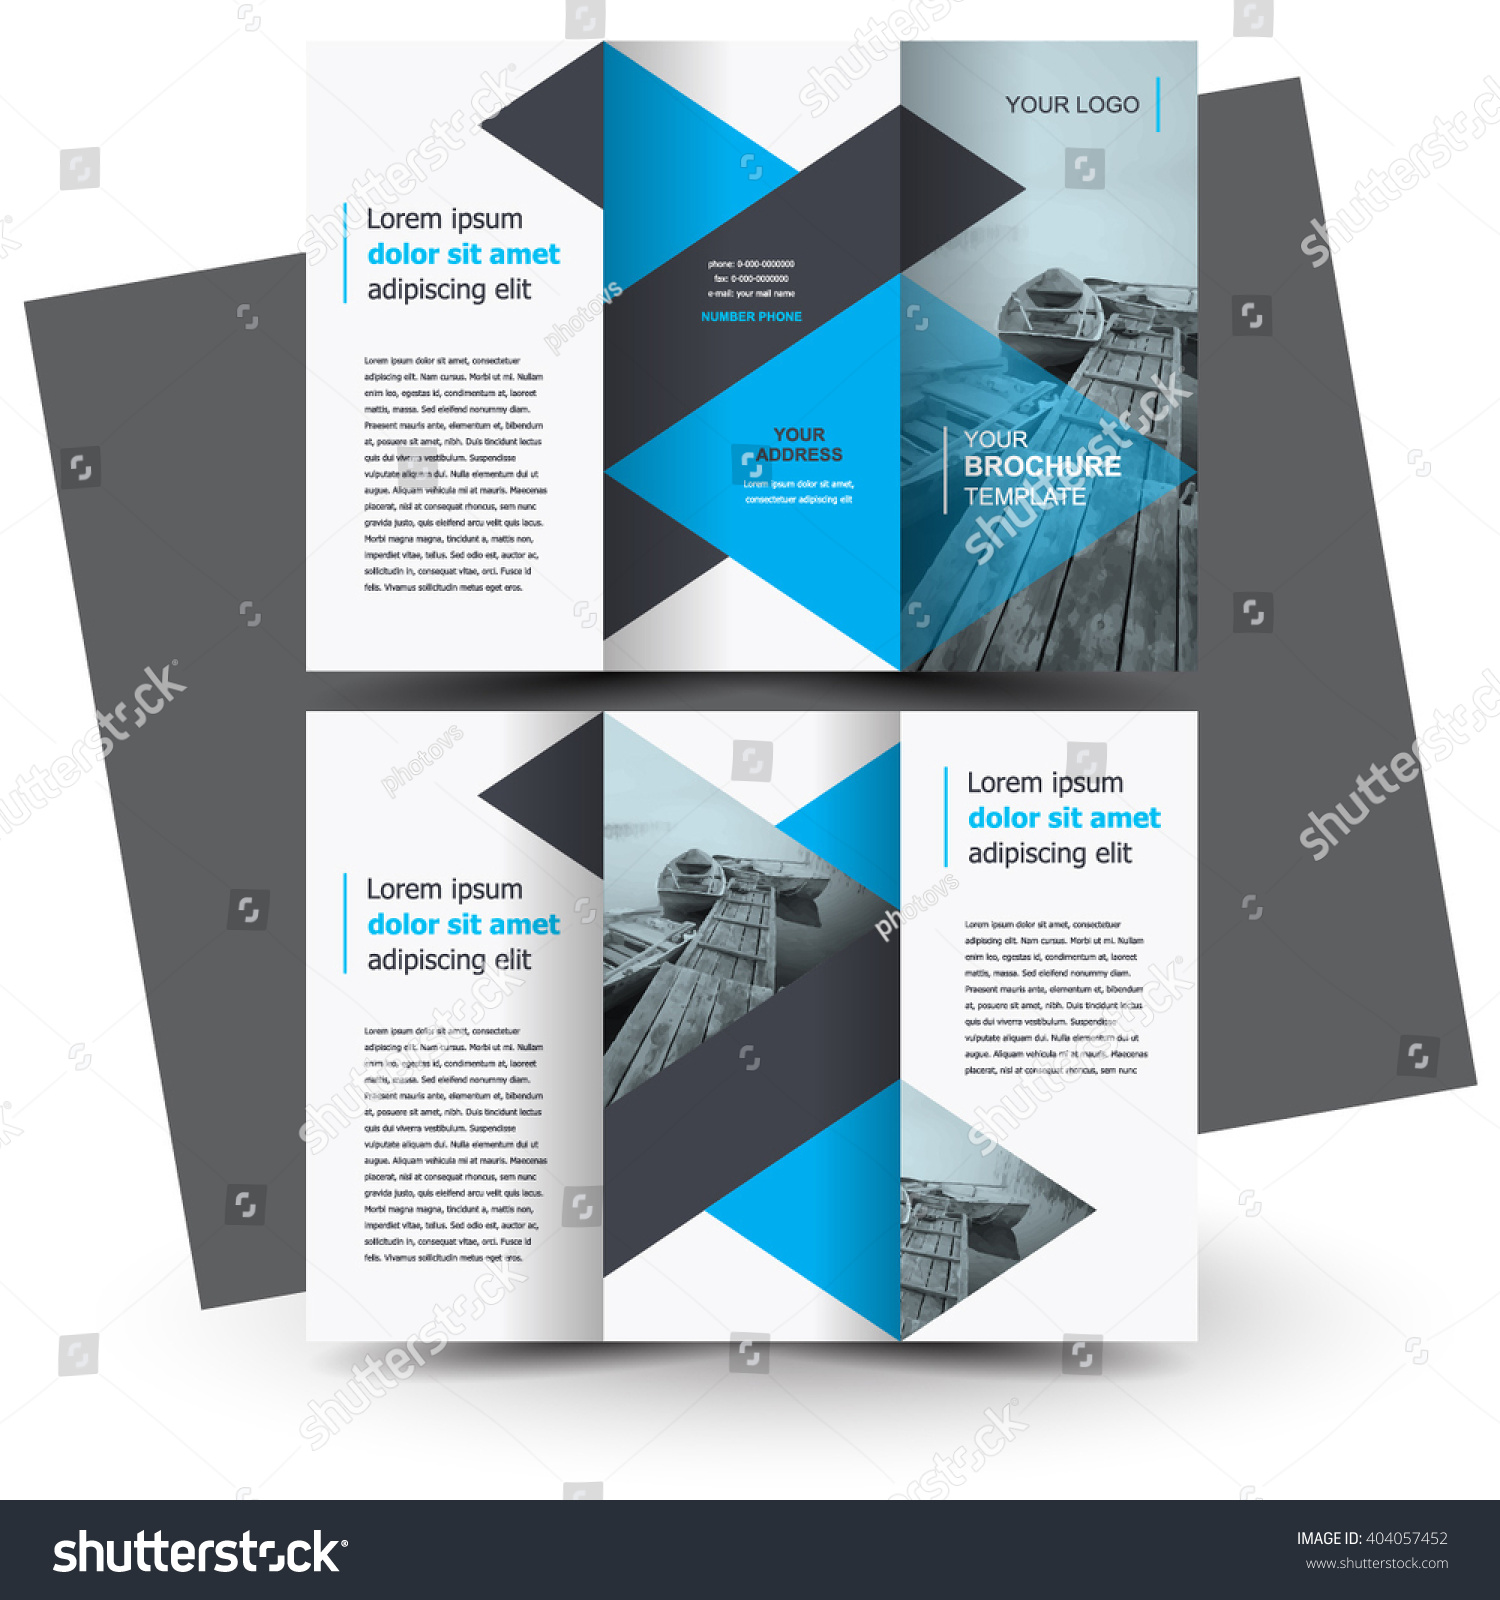 brochure tri fold templates - brochure design brochure template creative trifold stock